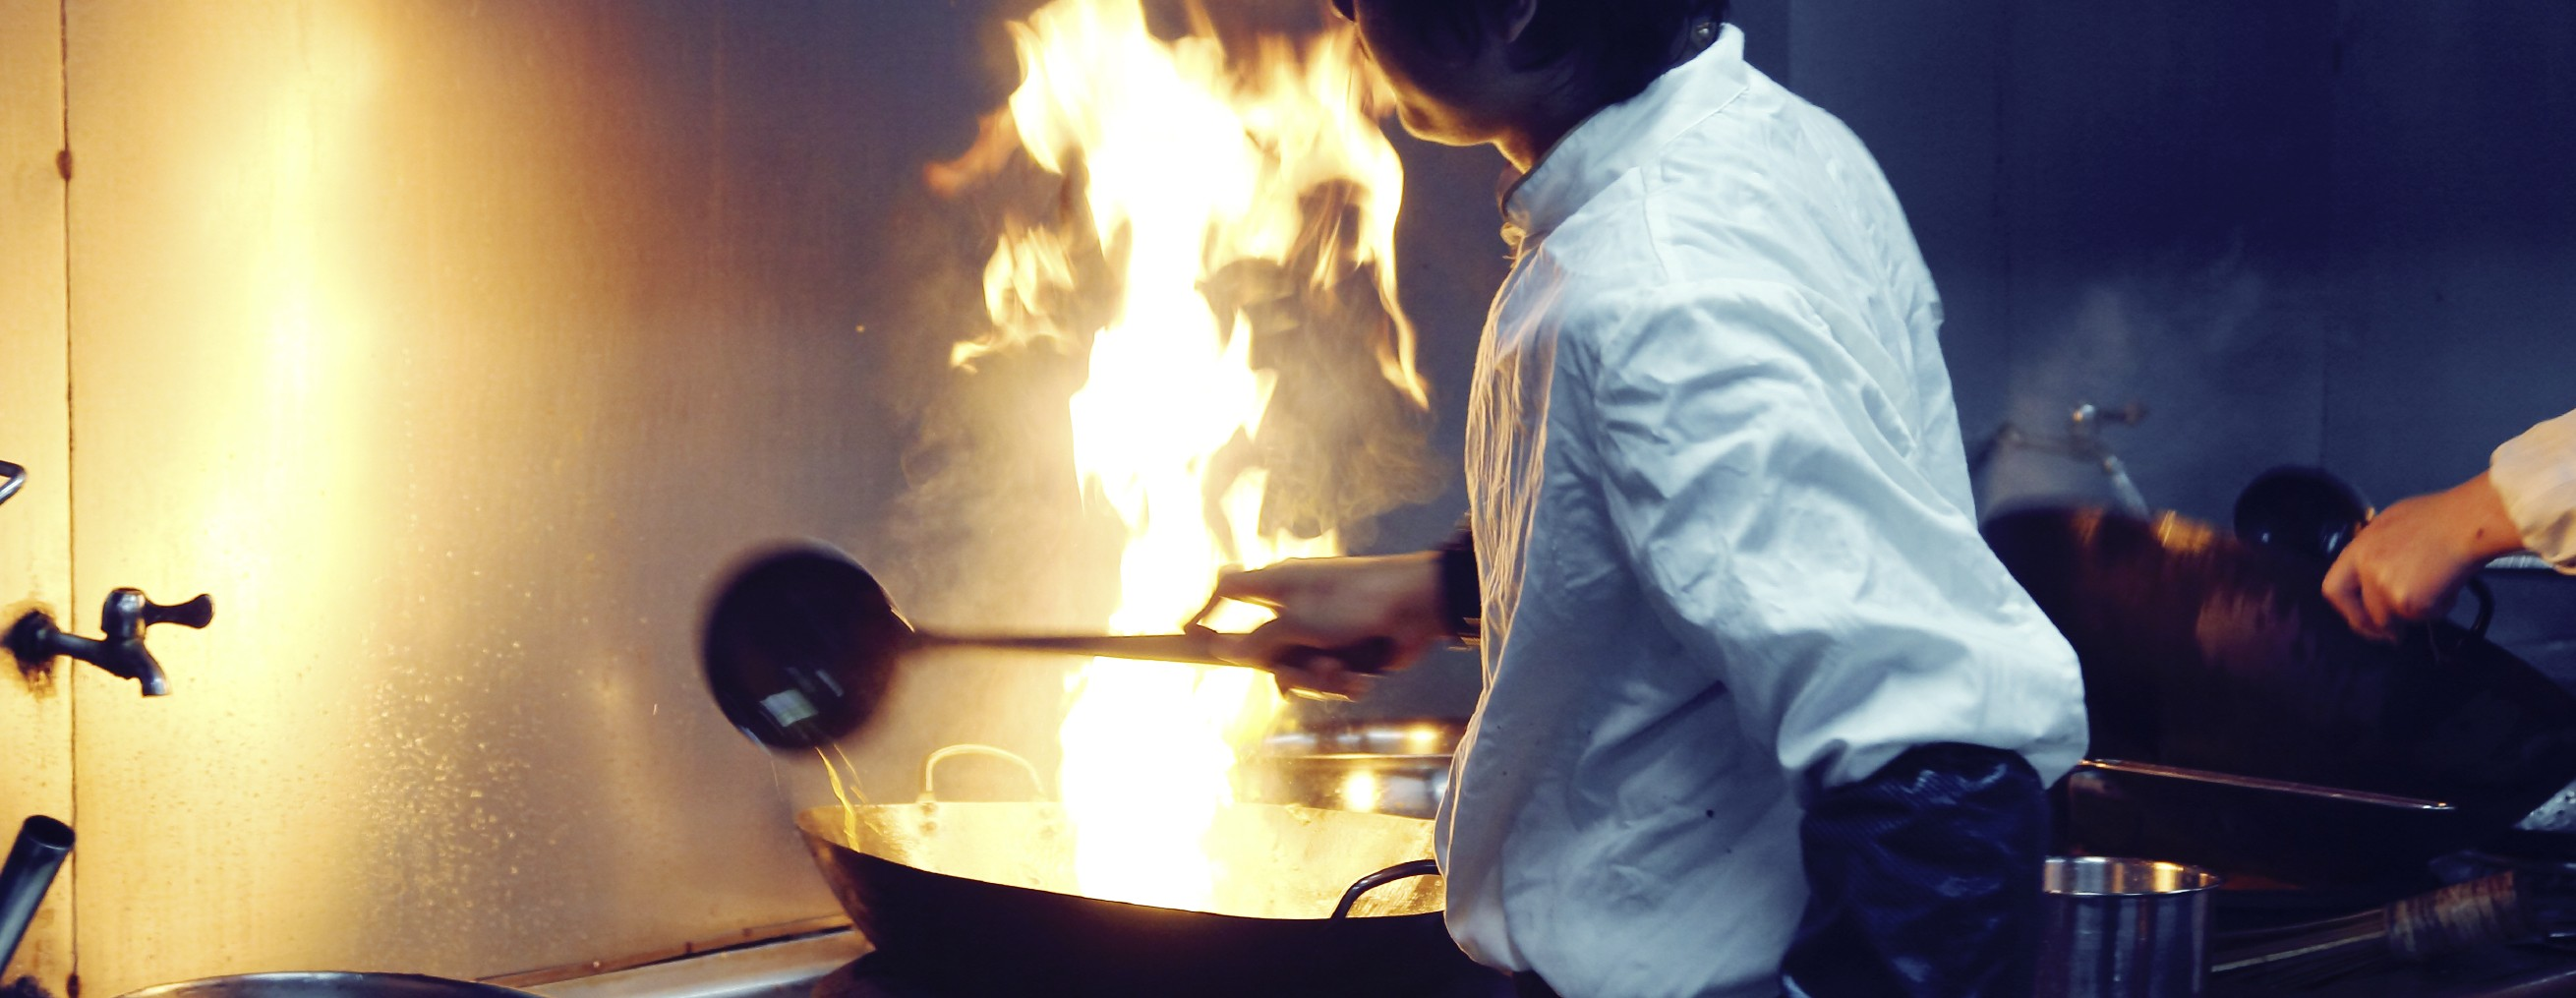 Can you take the heat? Becoming a chef takes hard work, dedication and lots of training!